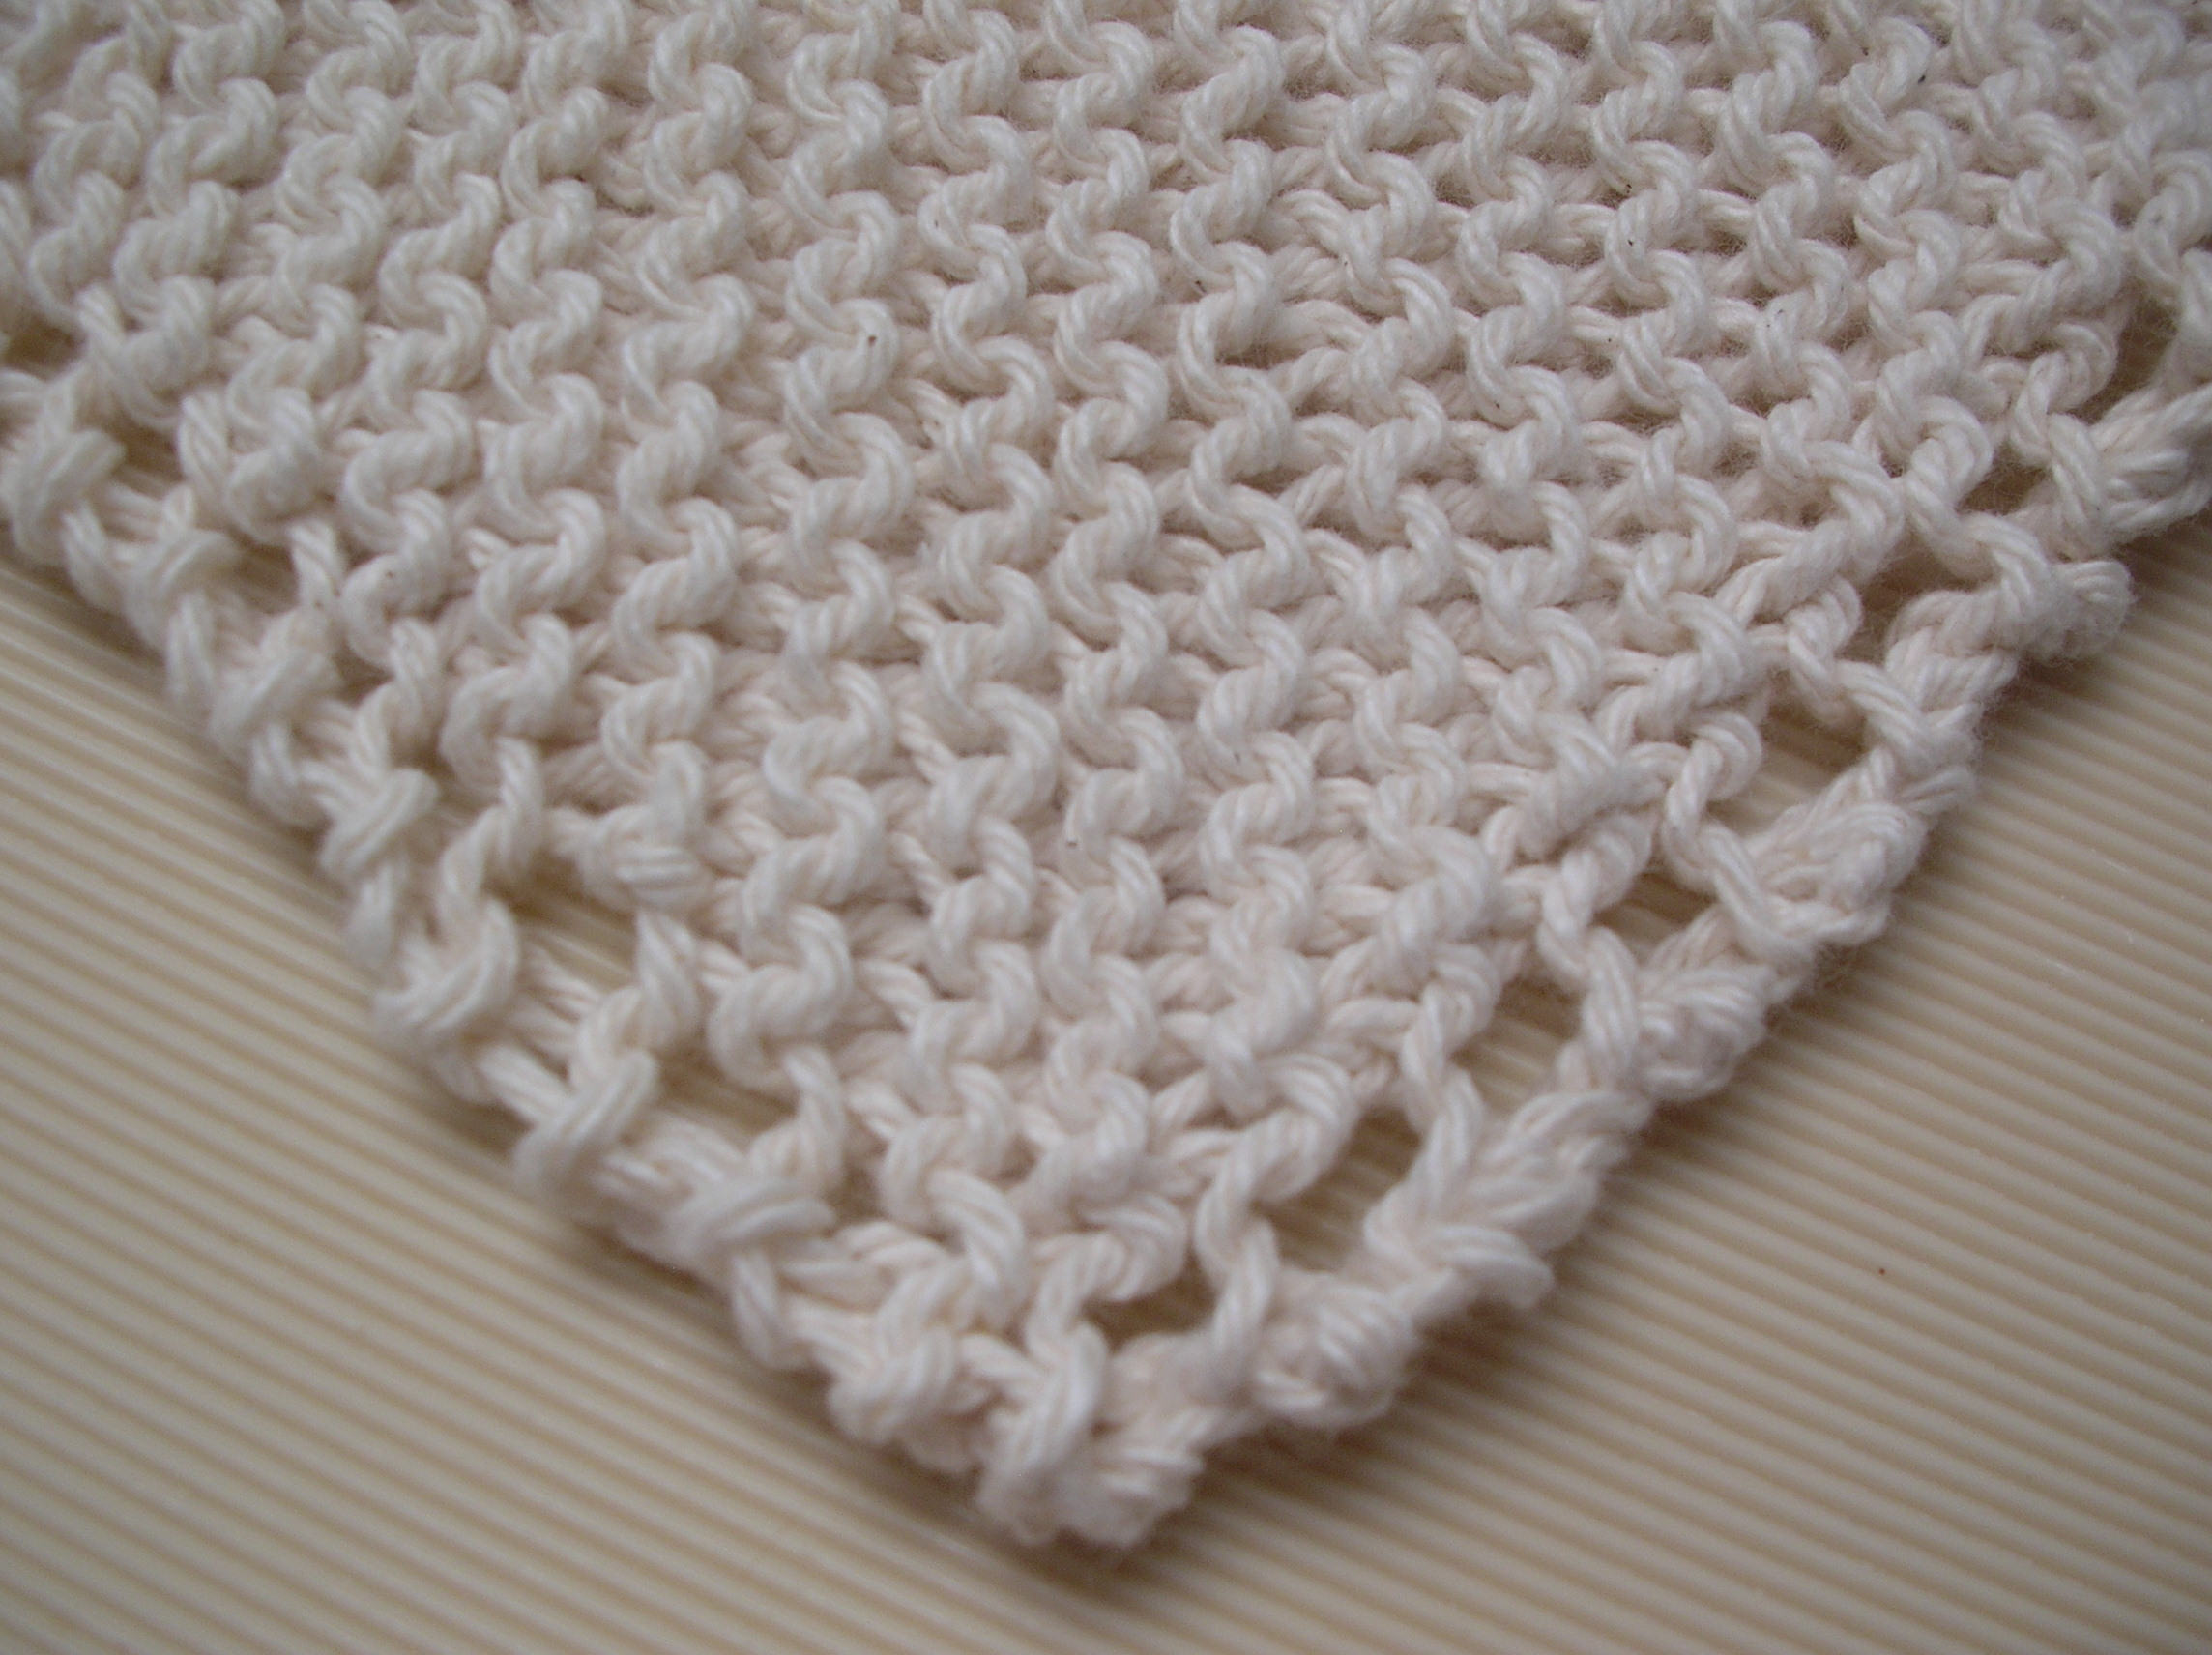 34 New Crochet Dishcloth Patterns For Free - Patterns Hub